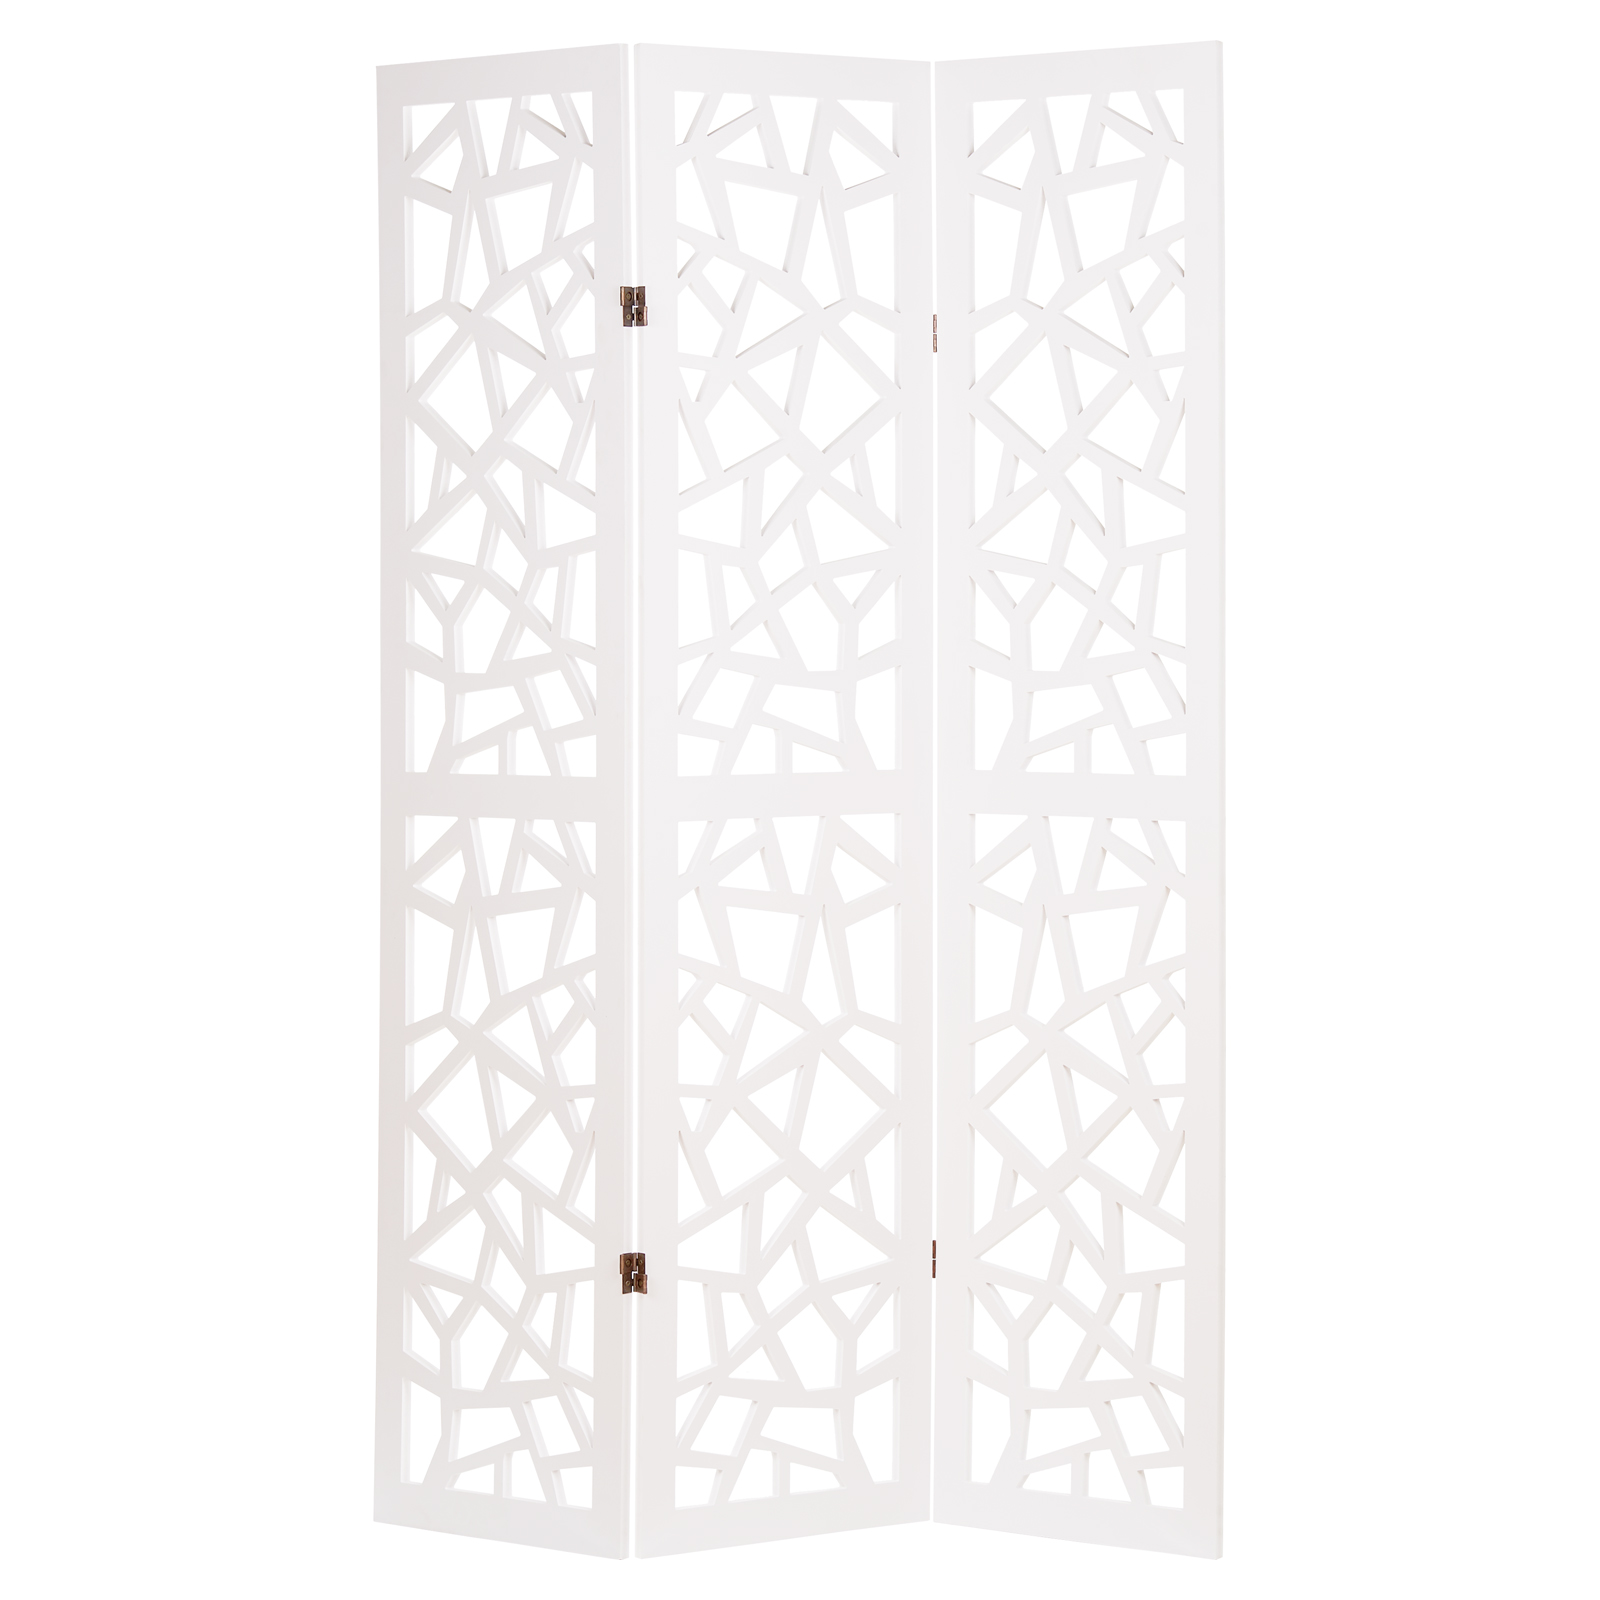 Details About Hartleys White 3 Panel Cut Out Pattern Room Divider Separator Parion Screen